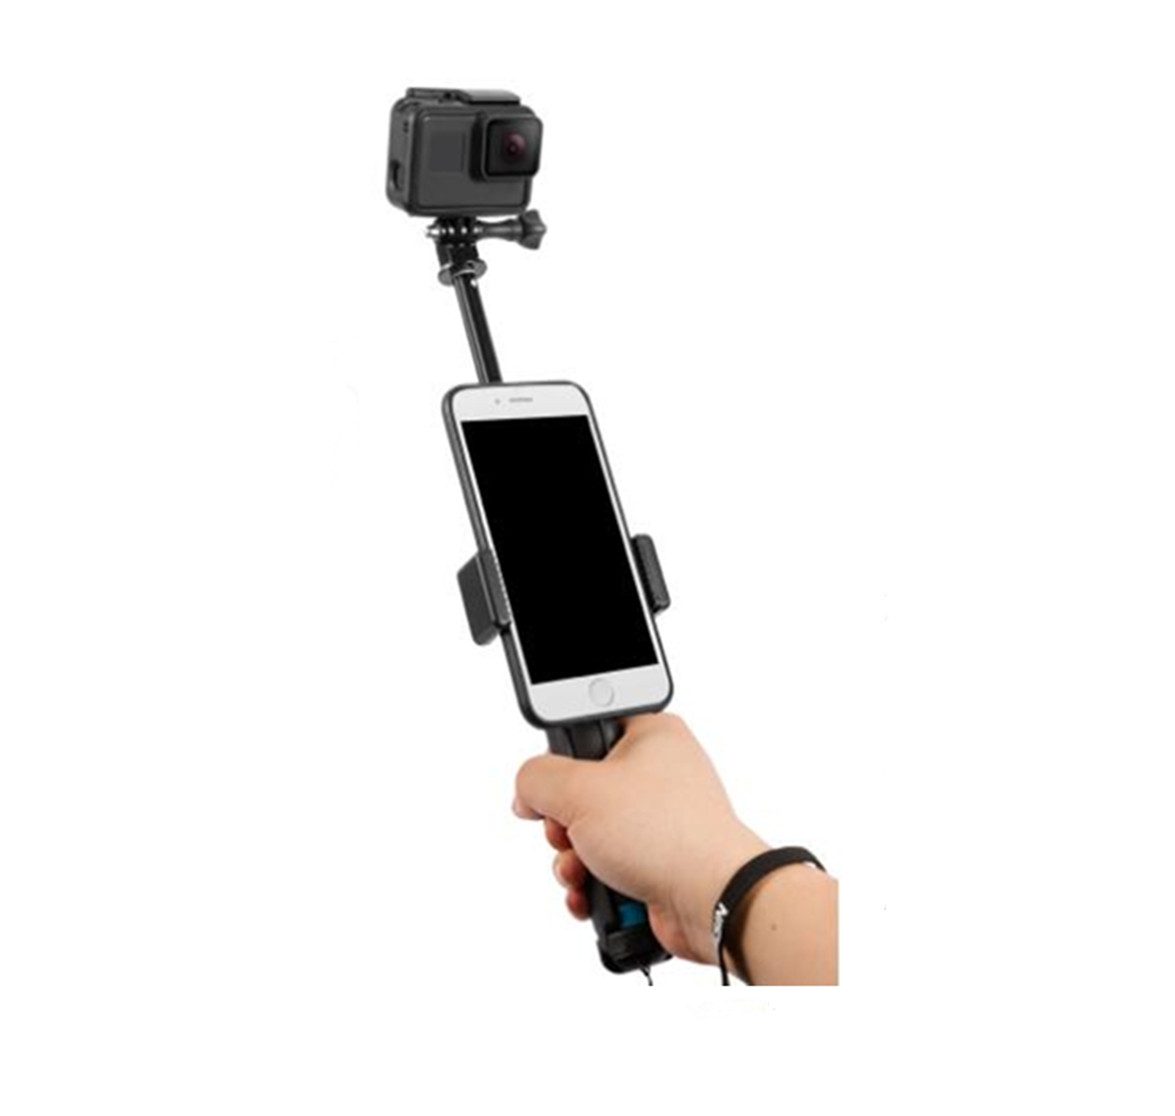 DJI Osmo Action Extendable Aluminum Alloy Selfie Stick with Detachable Tripod